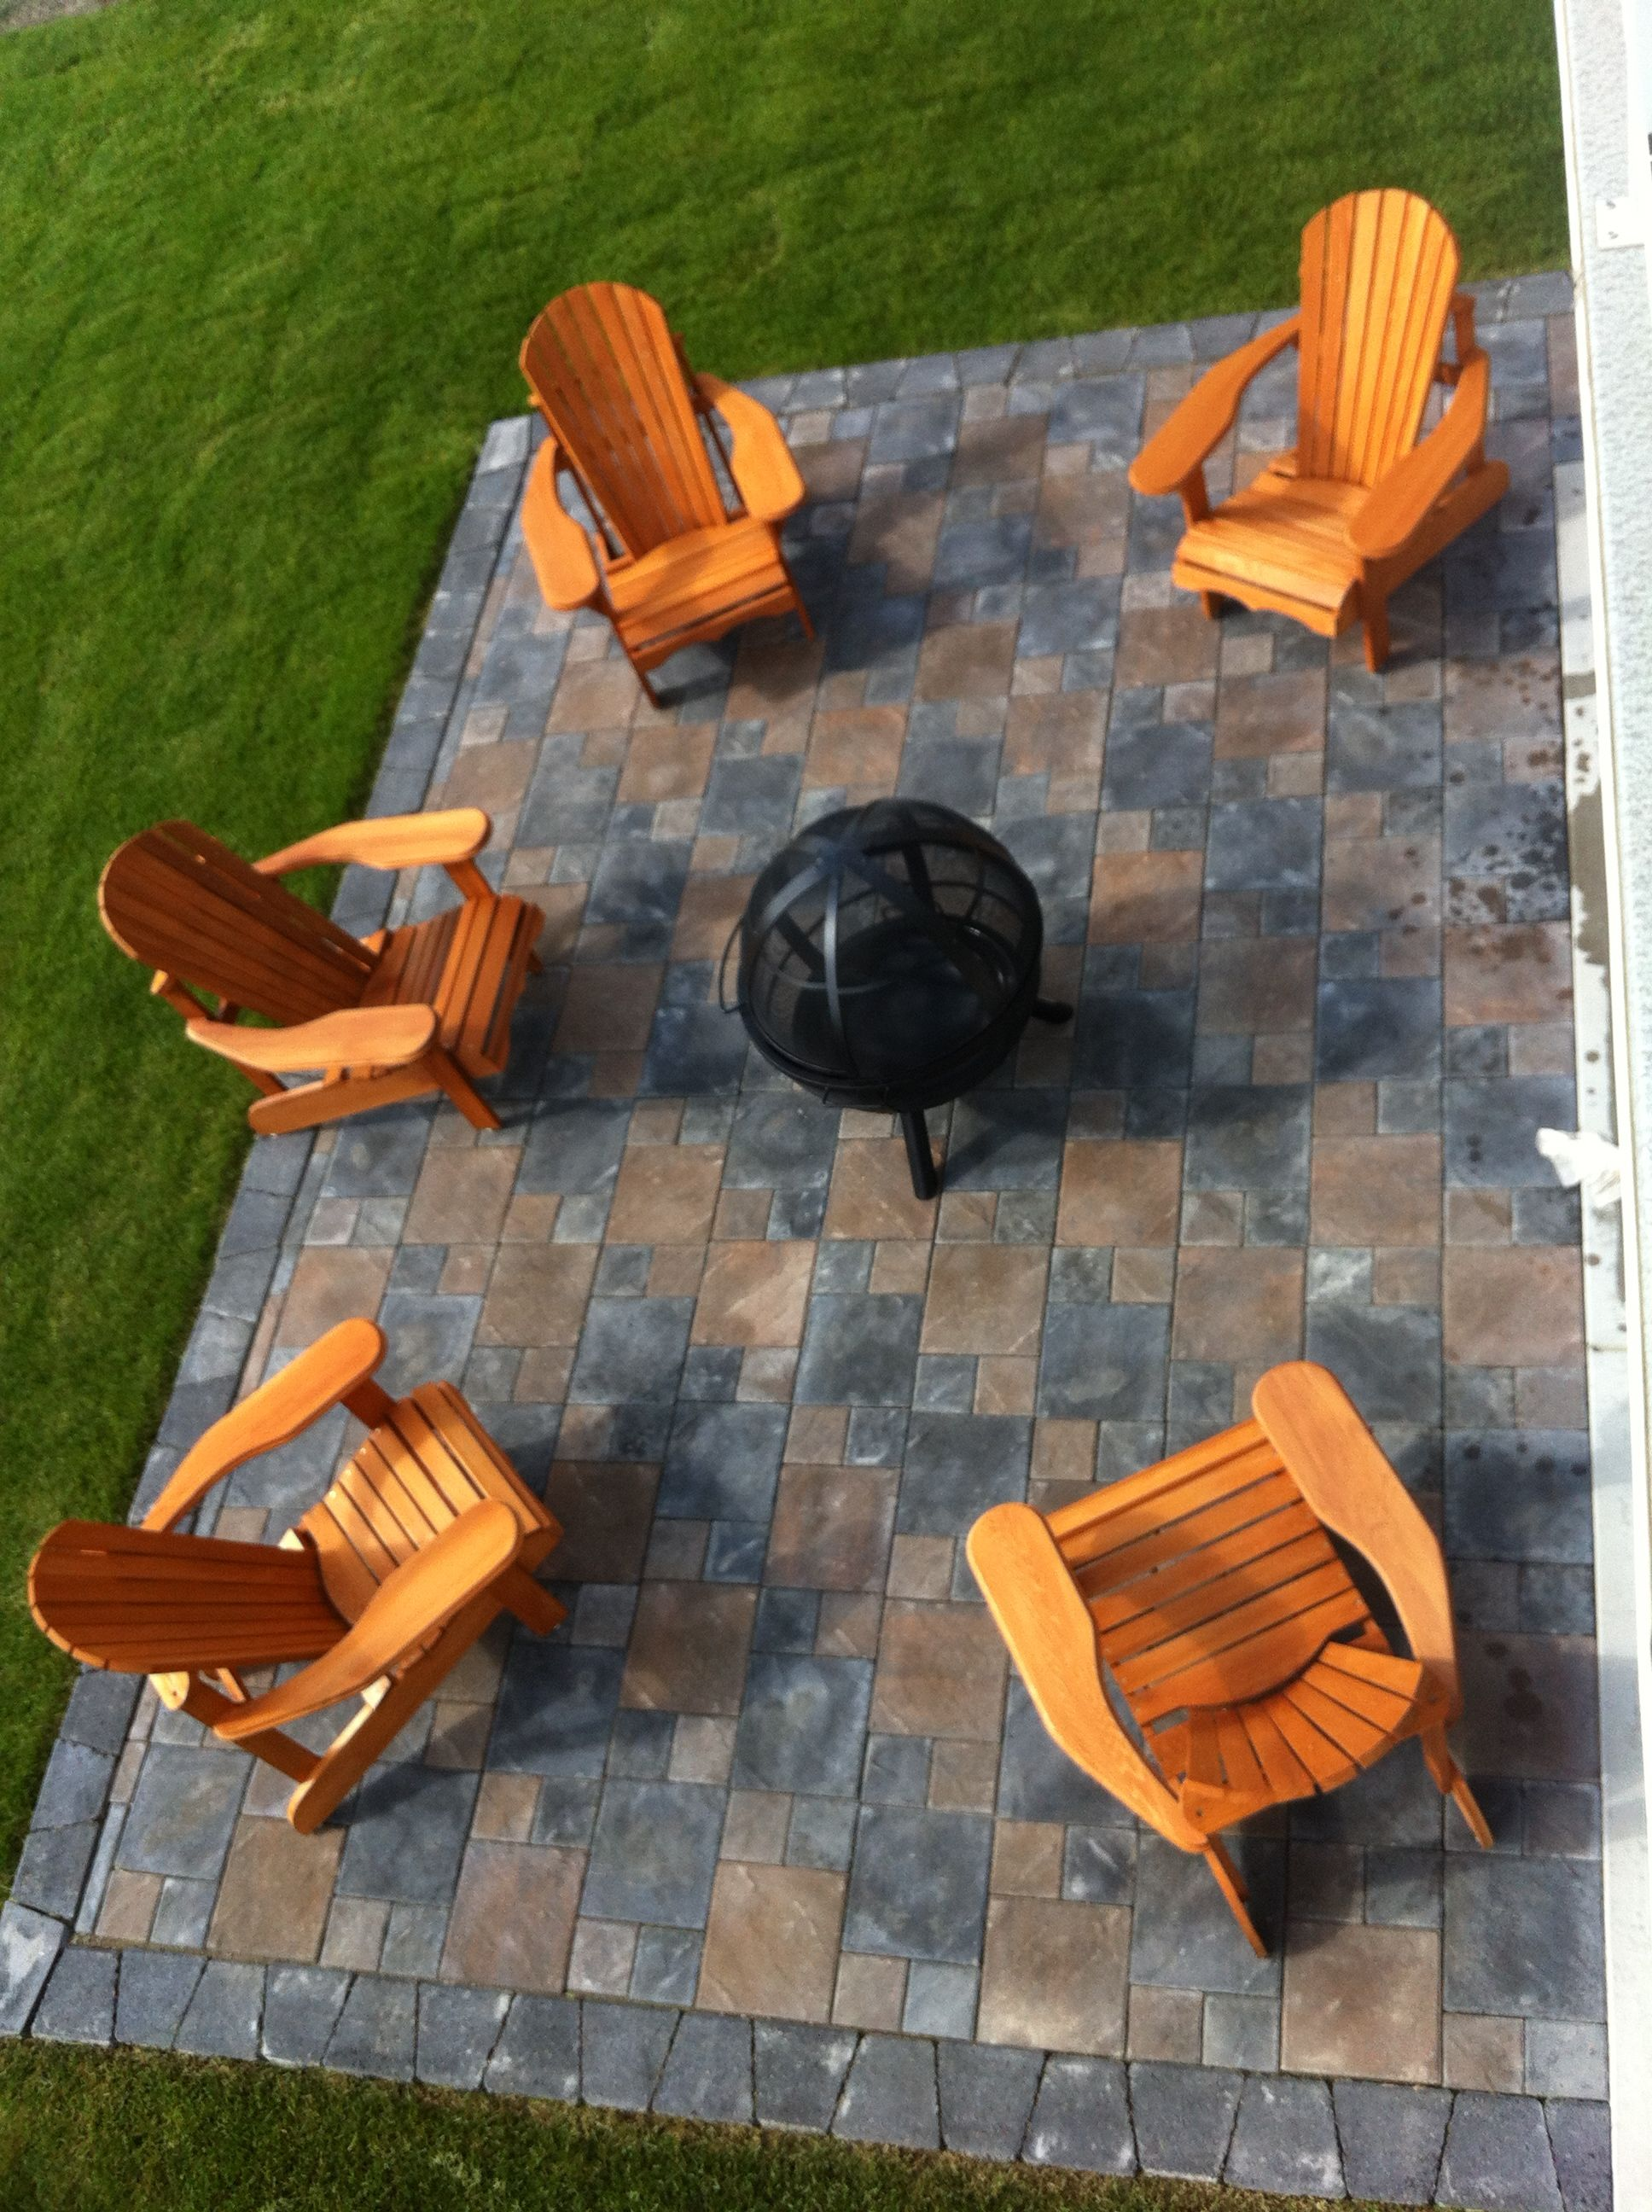 Firepit area - want to do something like this by our grill.